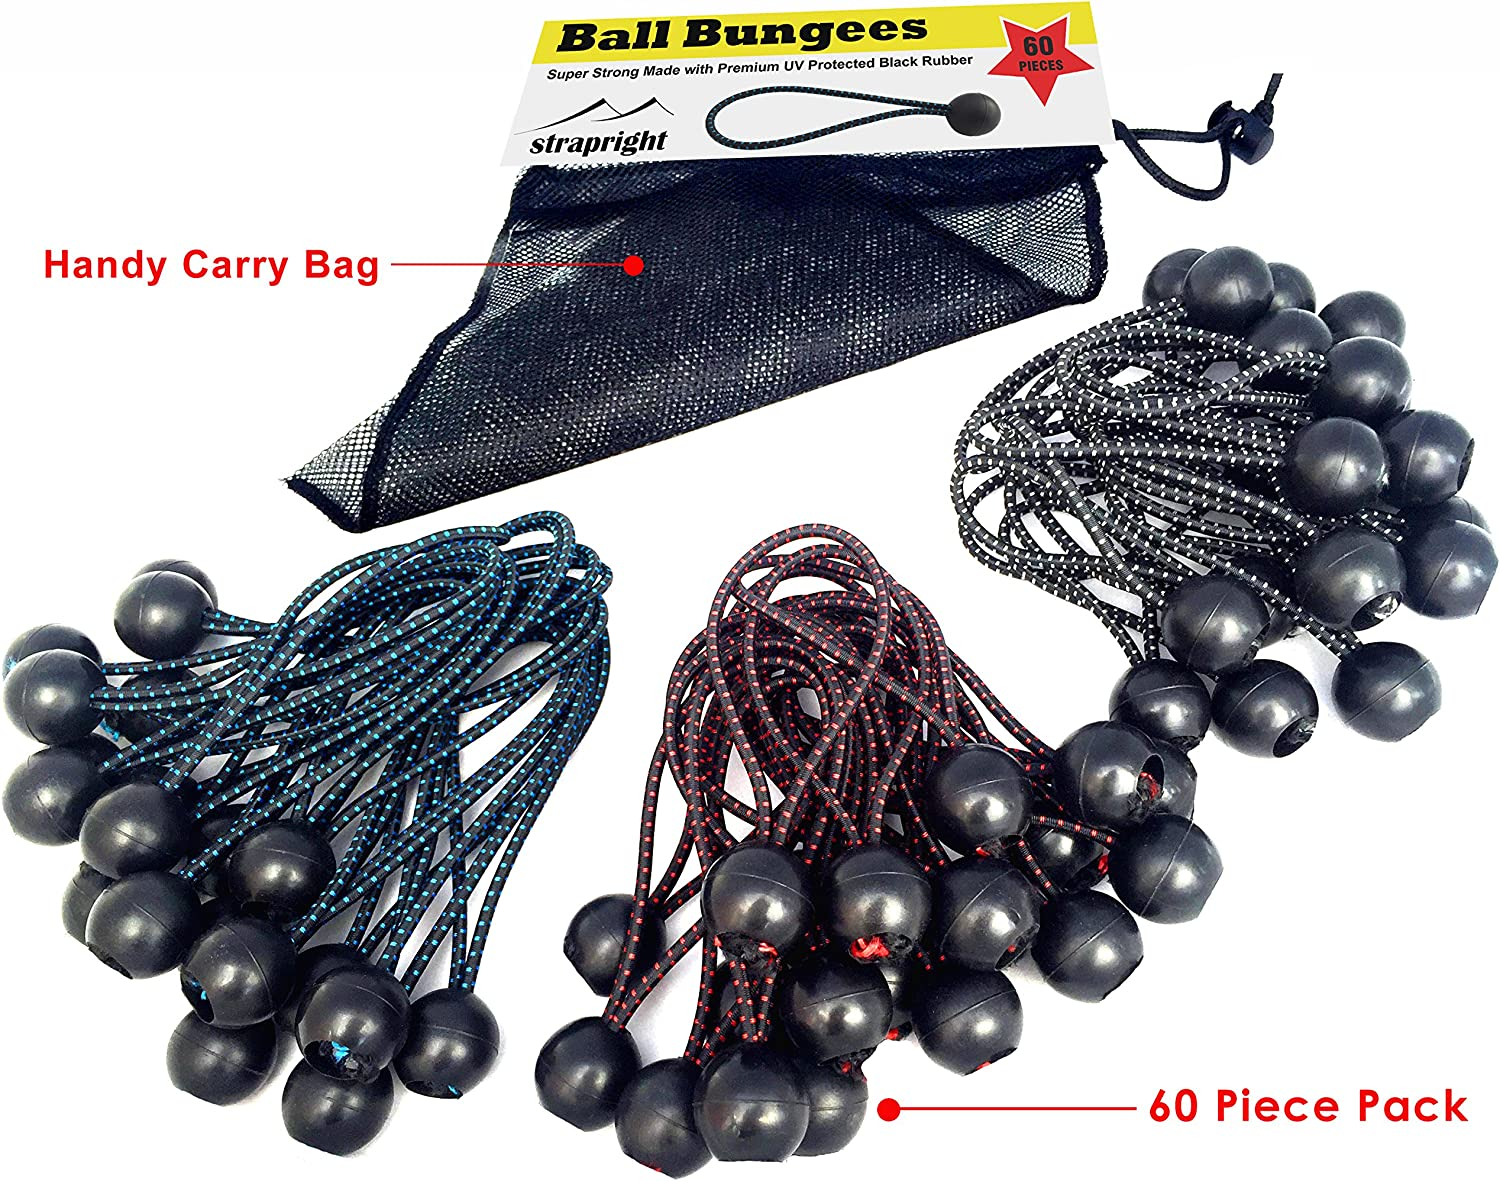 Quality 60 Pack of 3 Size Tarp Heavy Duty Black UV Treated Stretch Tie Loops with Plastic Toggle Color Coded Cord to Indicate Size Banner /&Canopy Fasteners Premium Ball Bungee Cords 60 Pack